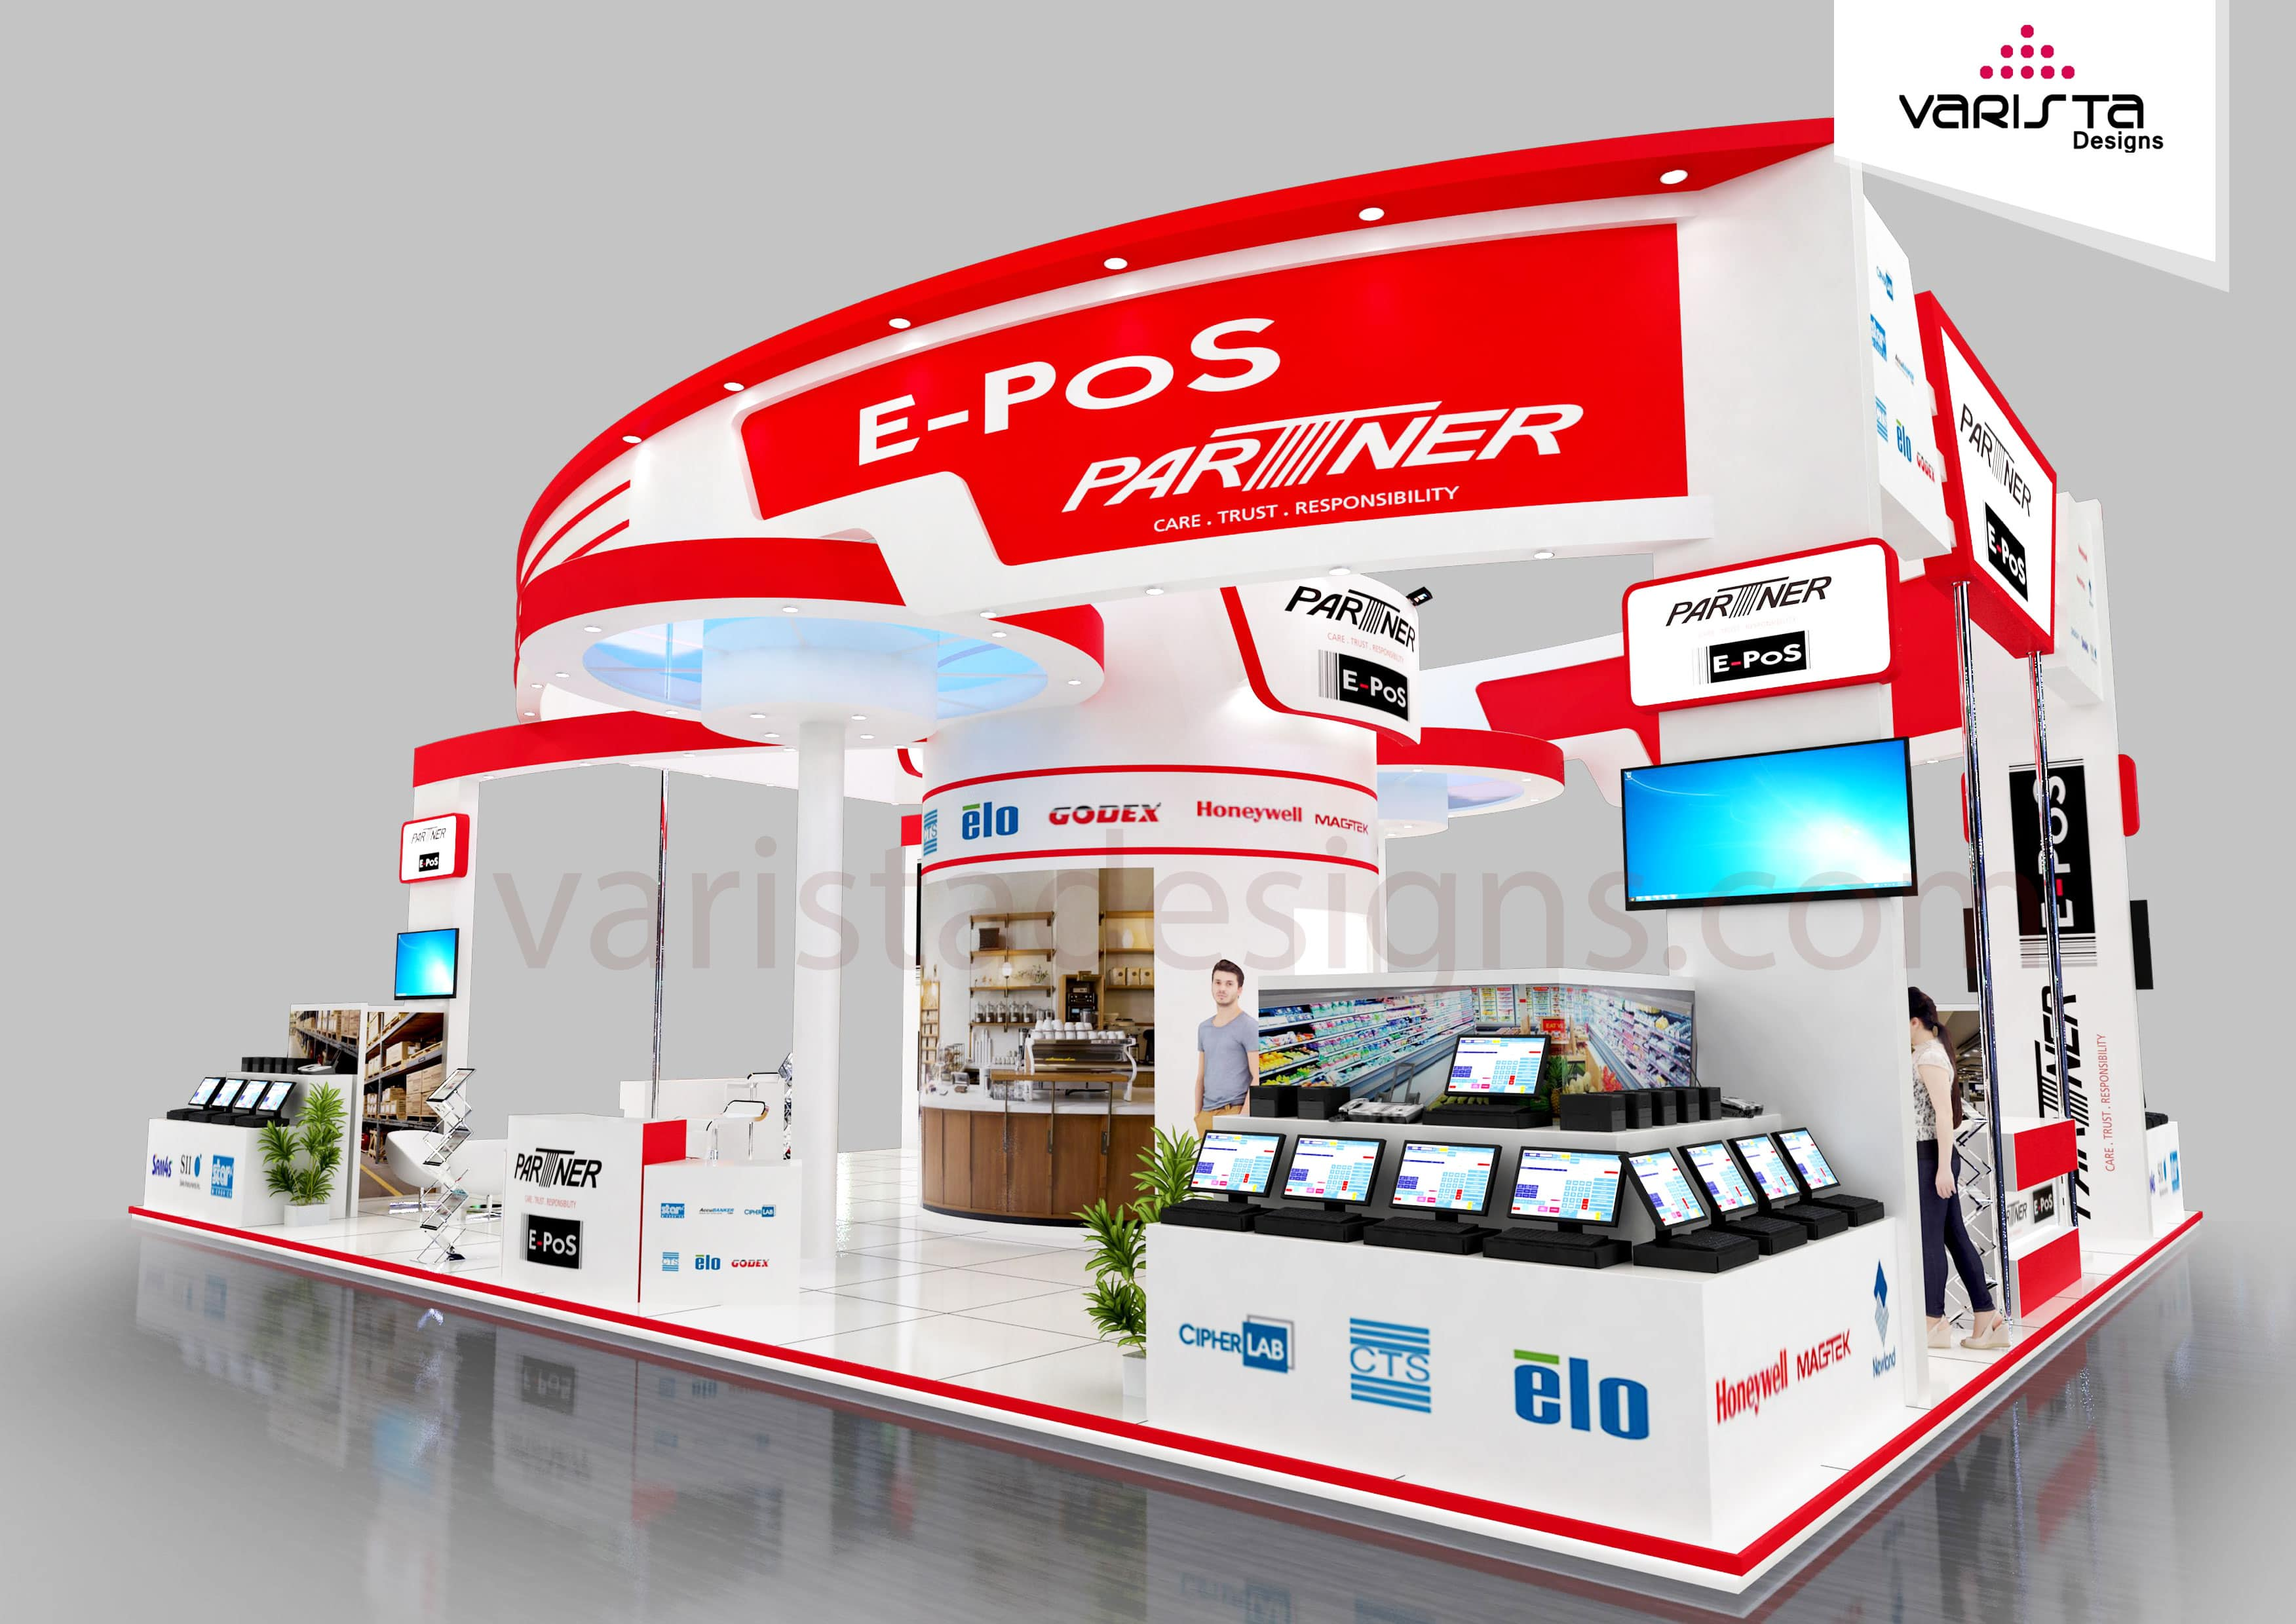 epos partner exhibition stand builders at gitex dubai